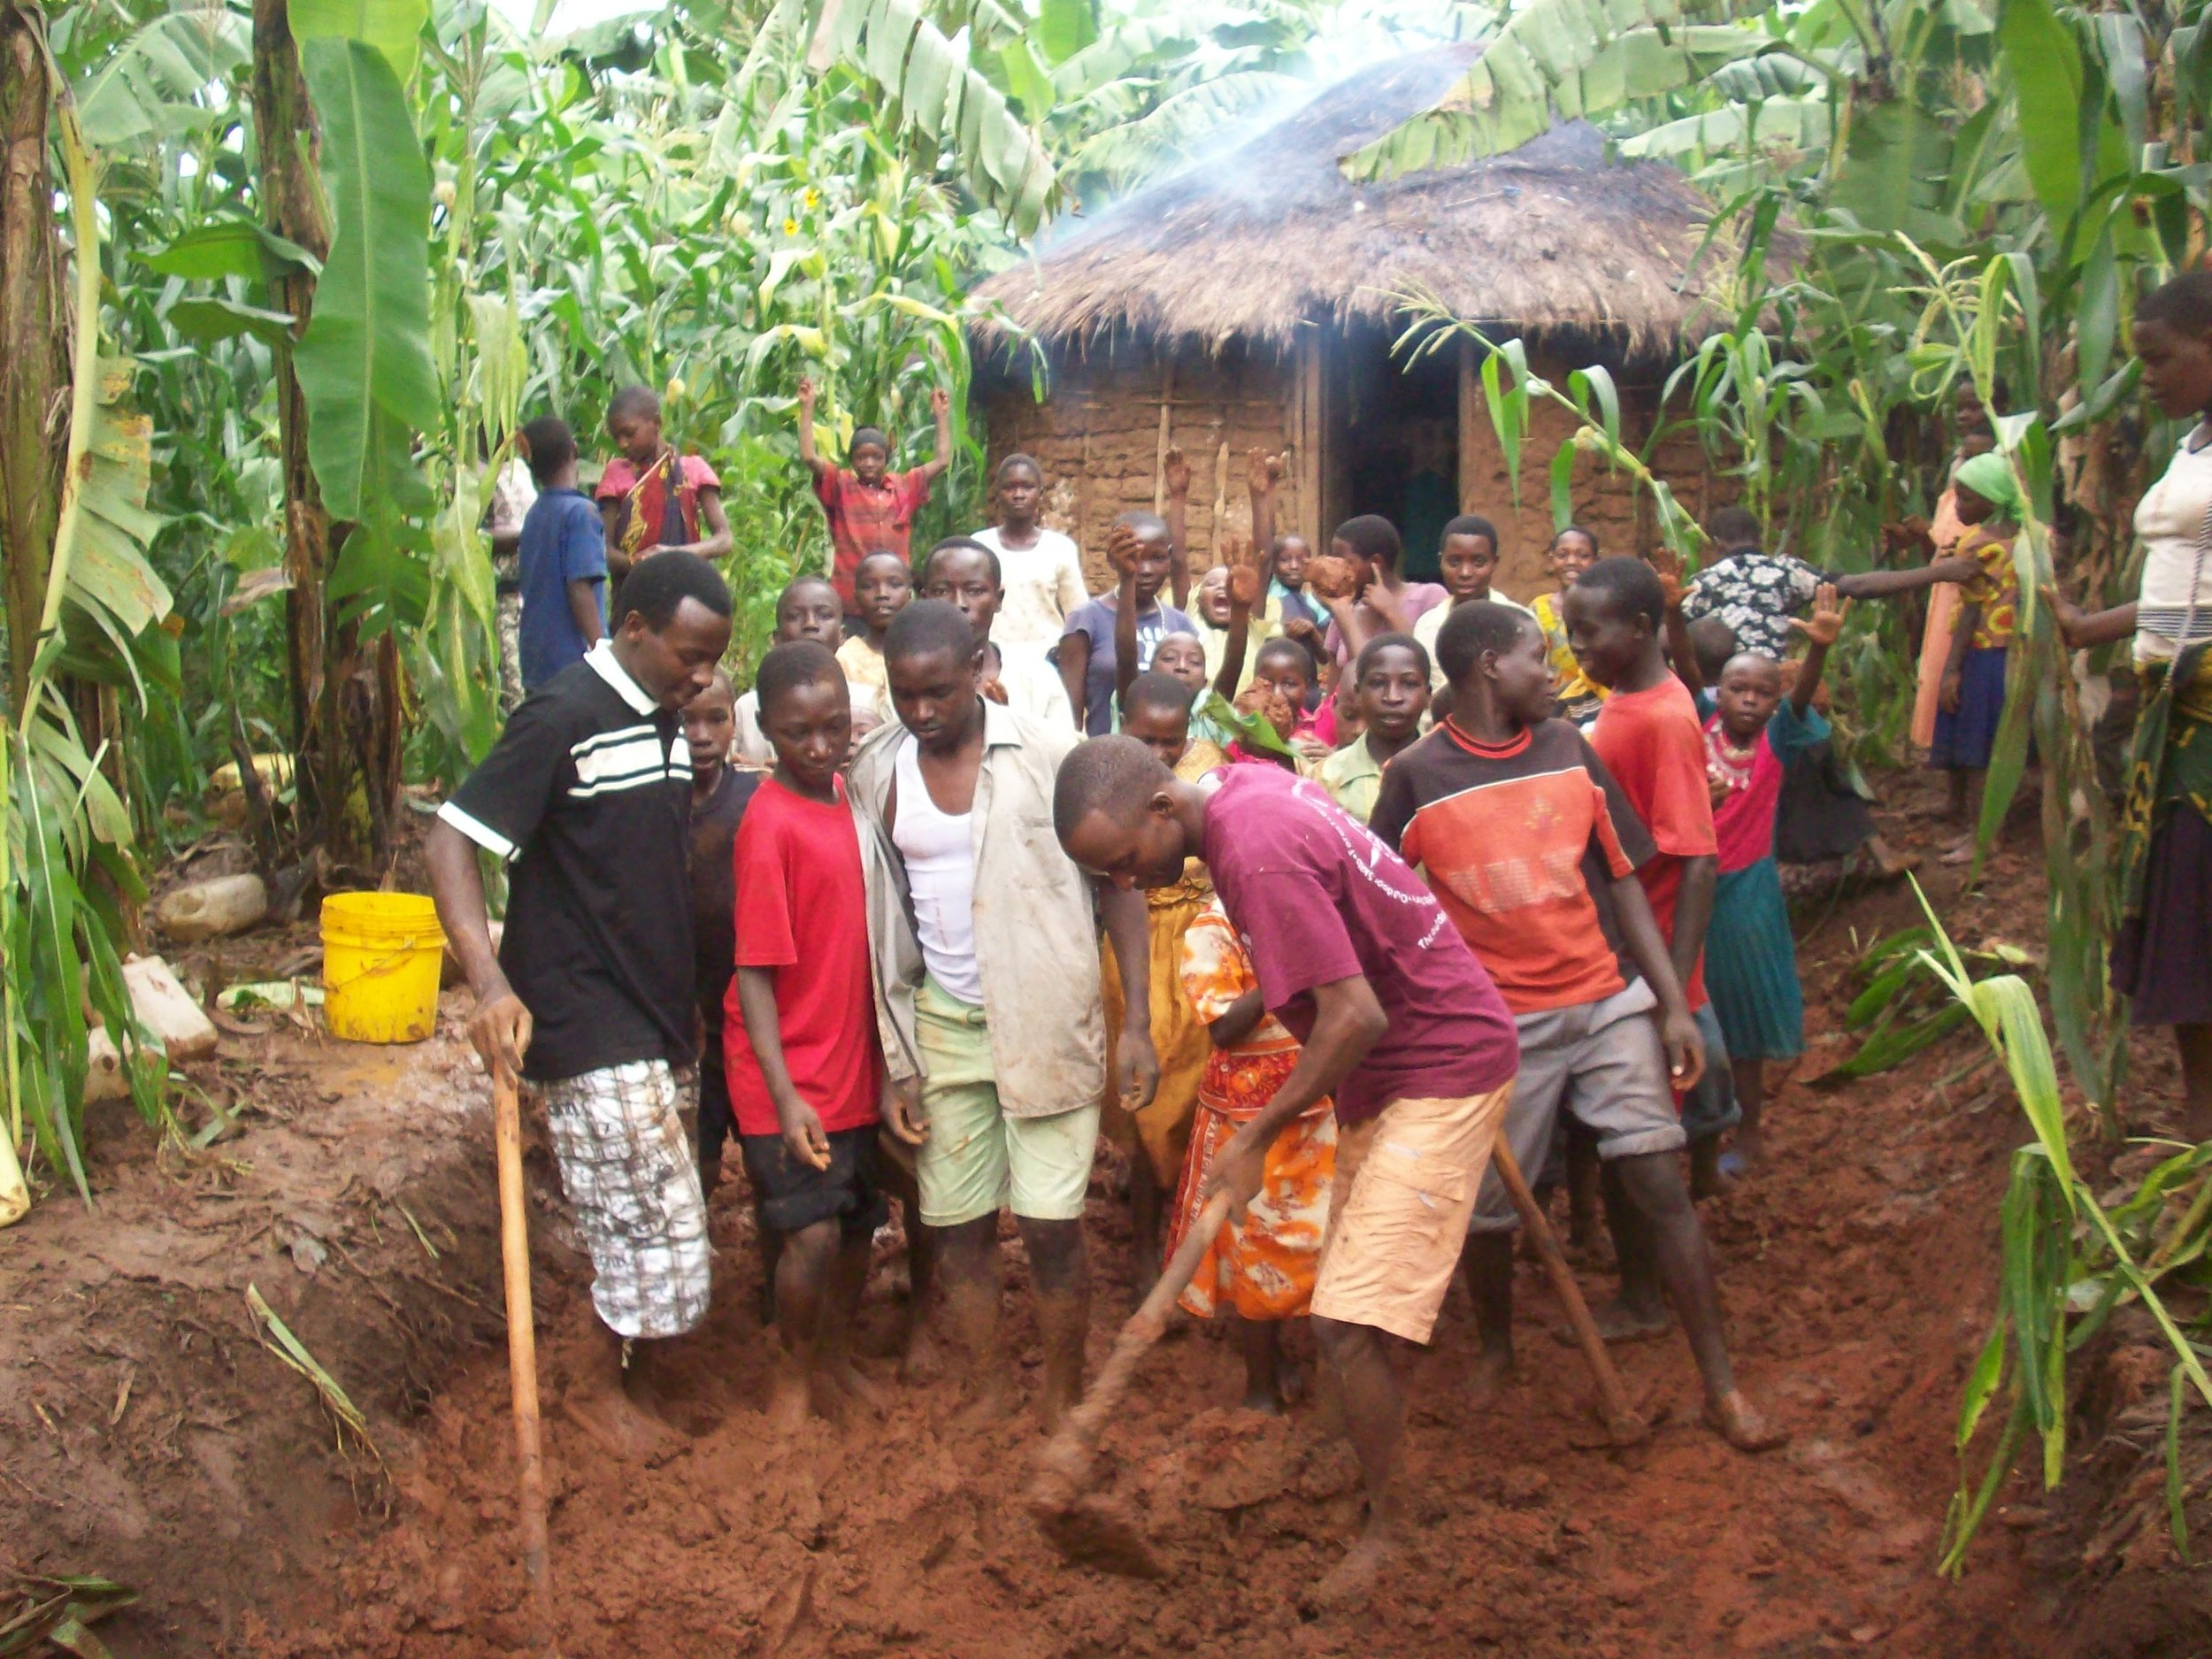 Kwa Wazee staff and children constructing a house for an older person in the community.